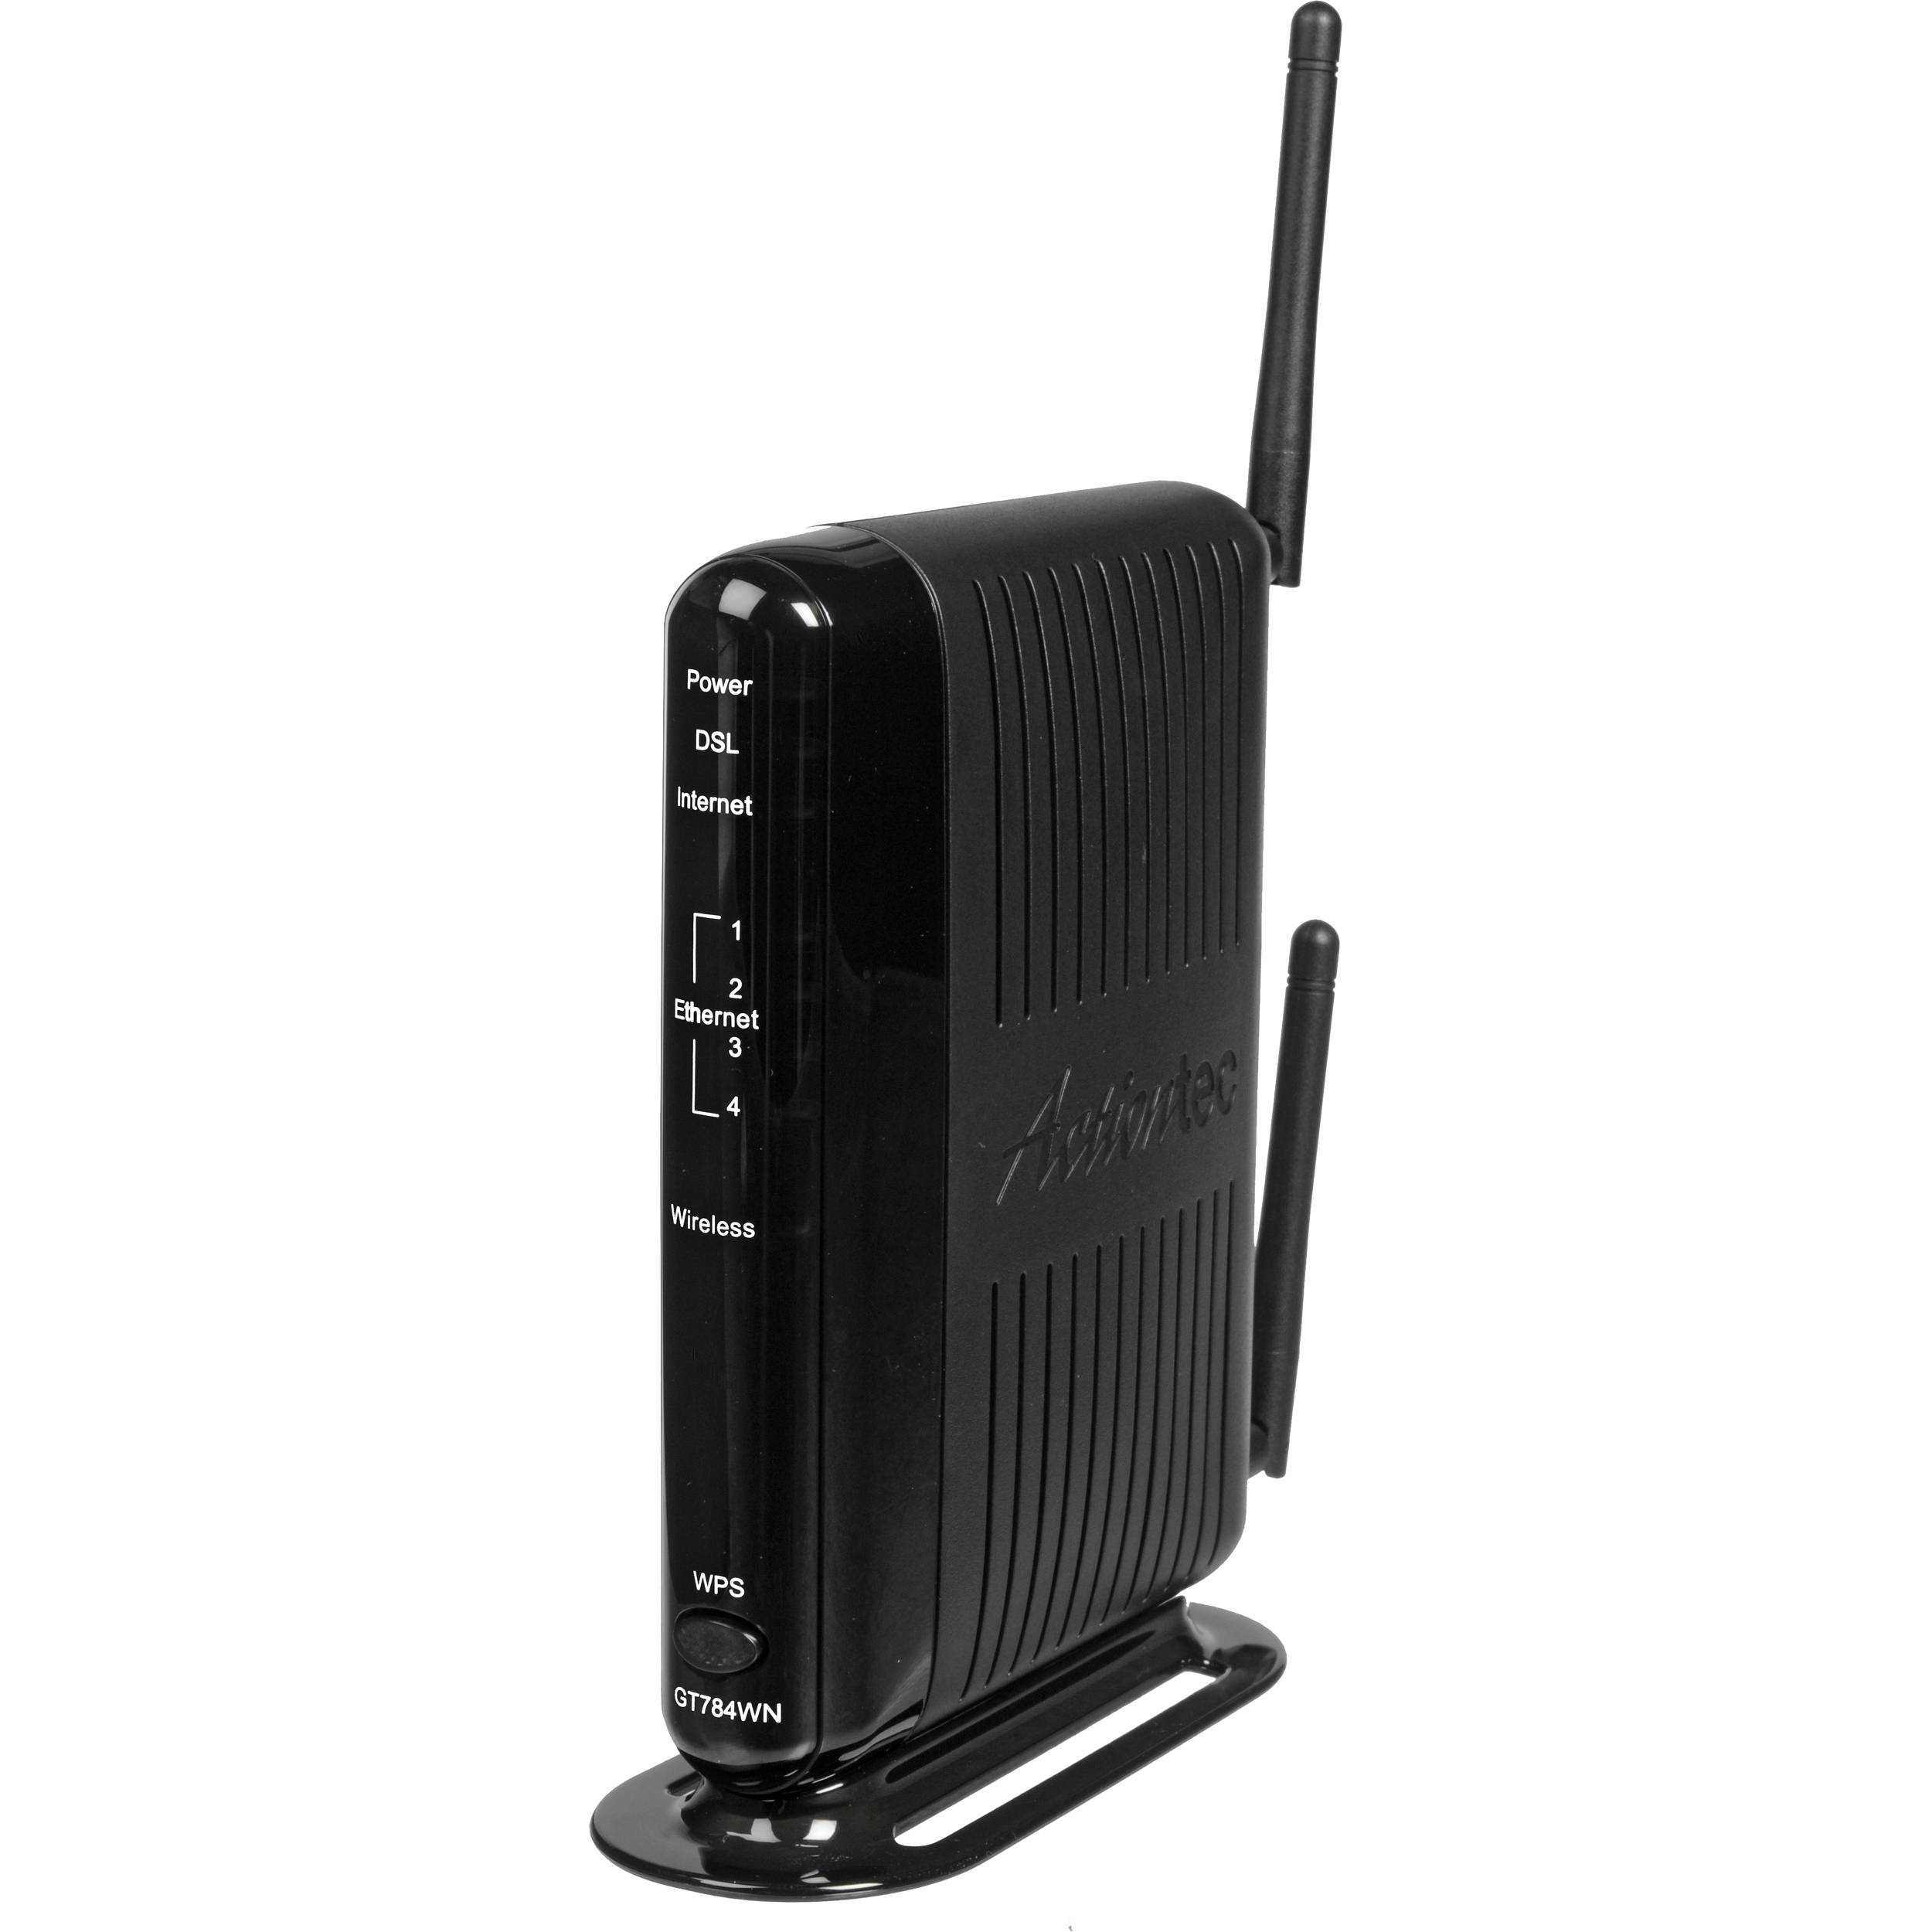 Actiontec Wireless N Adsl Modem Router Gt784wn 01 B Amp H